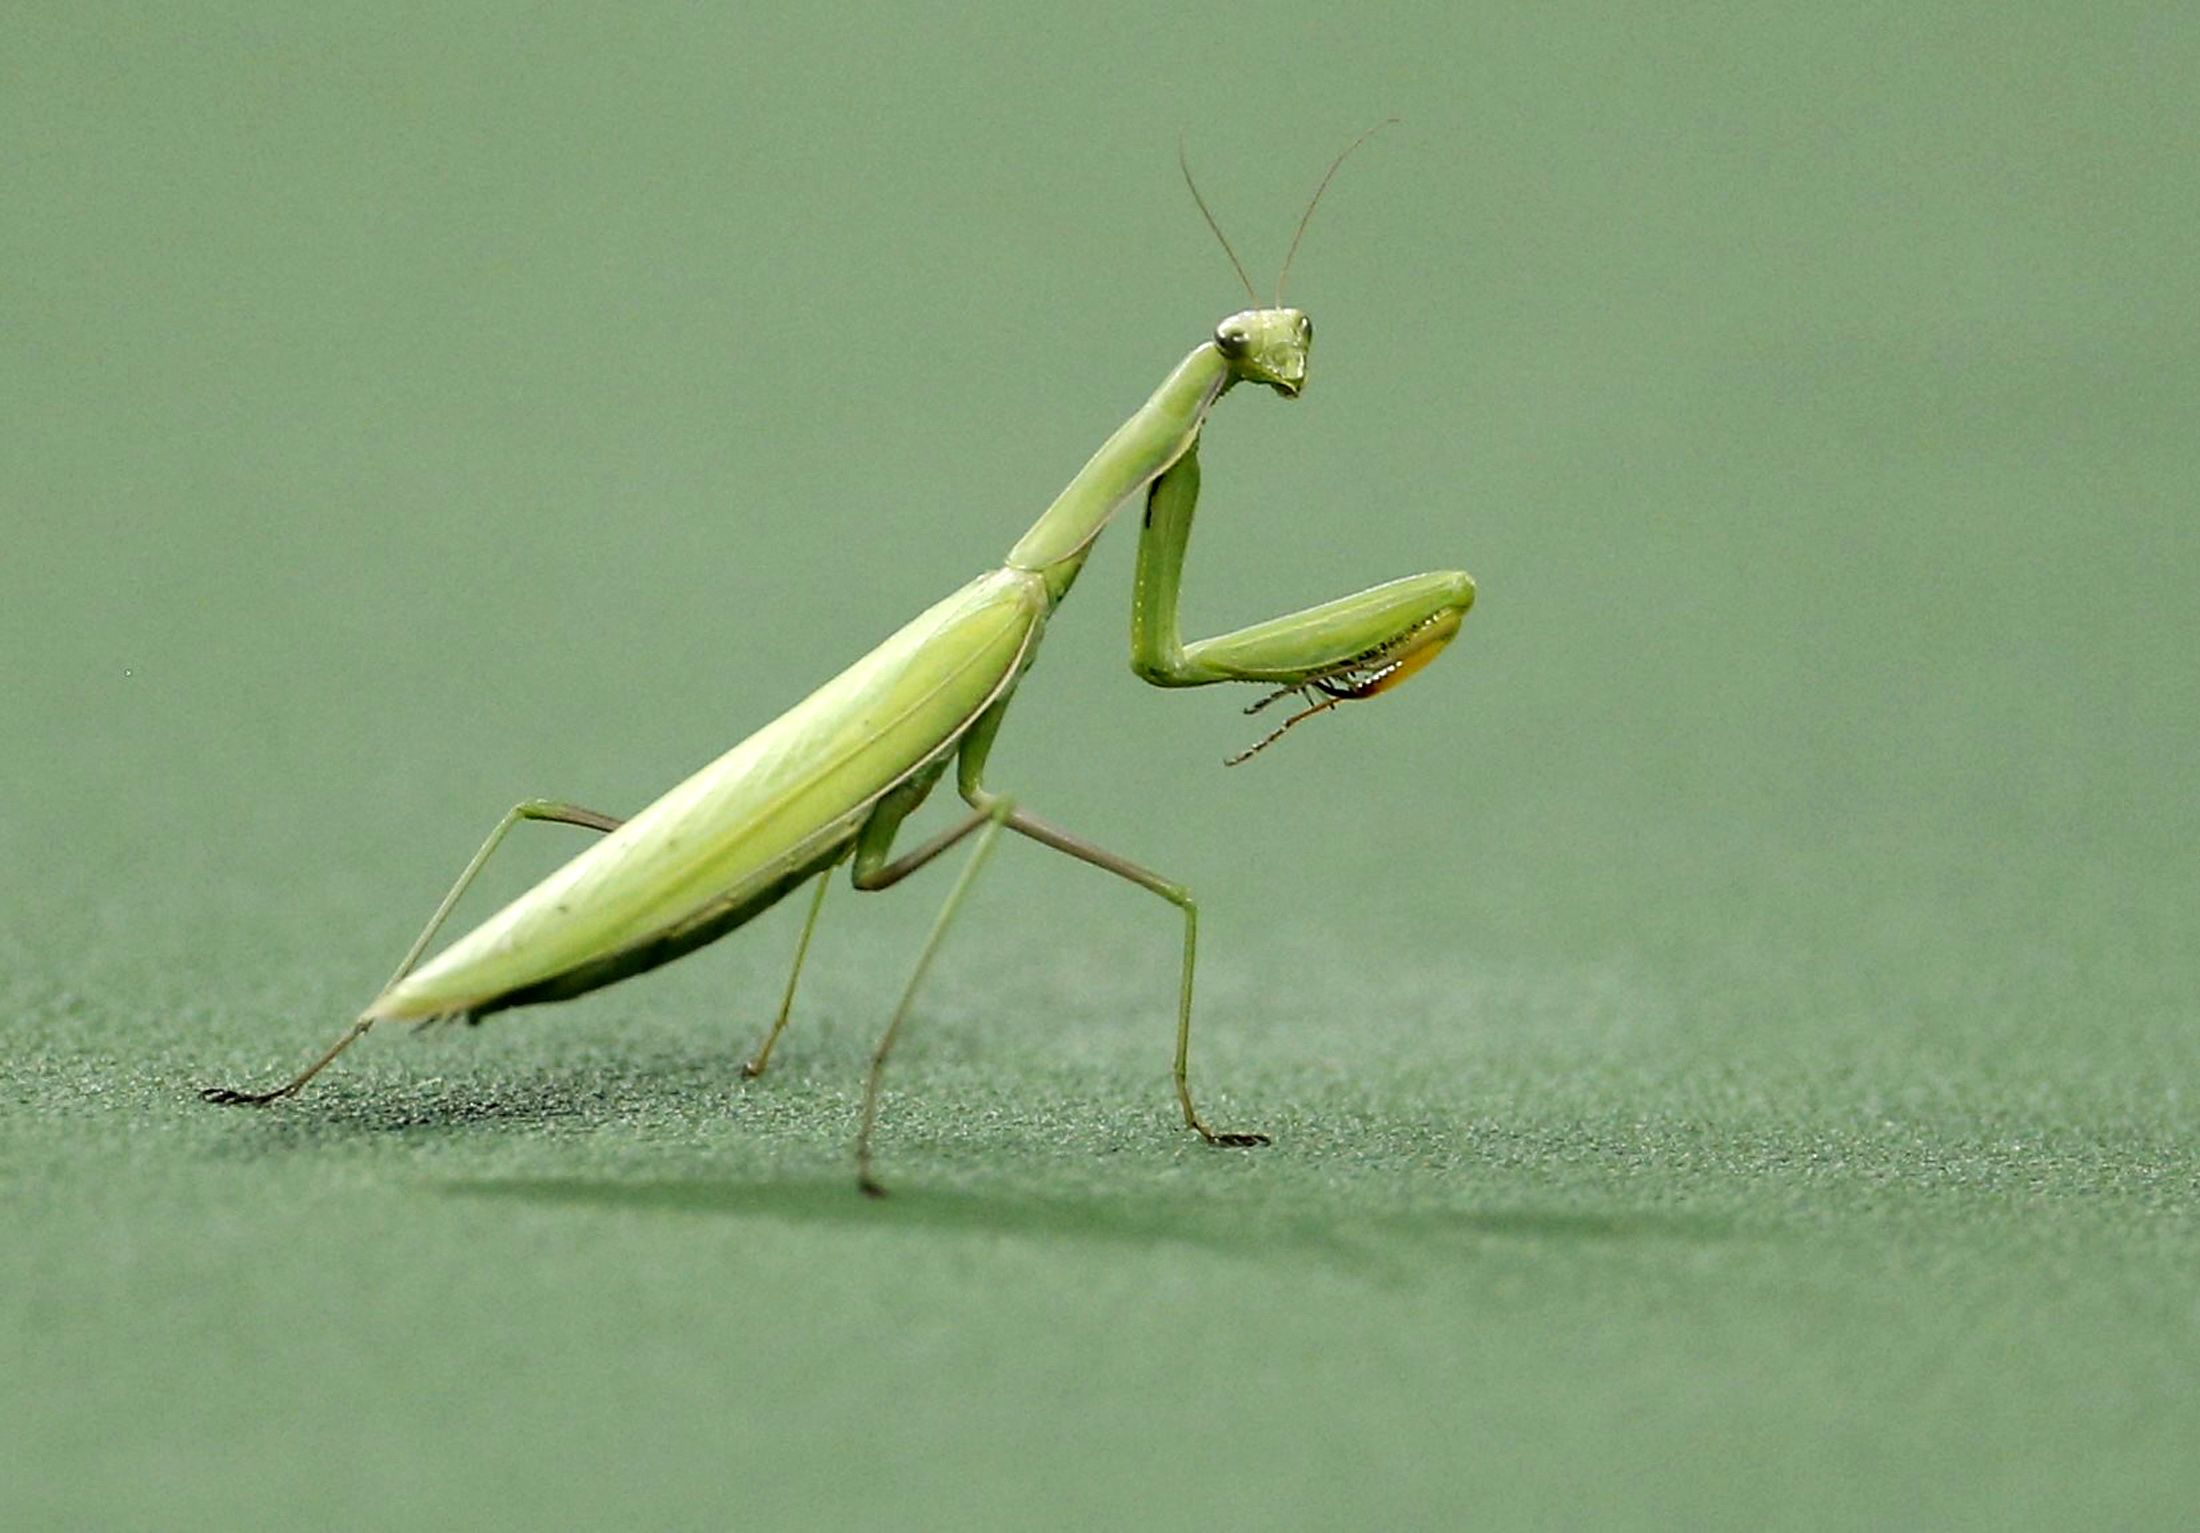 Aninimal Book: How Praying Mantises Could Help Build Better Robots